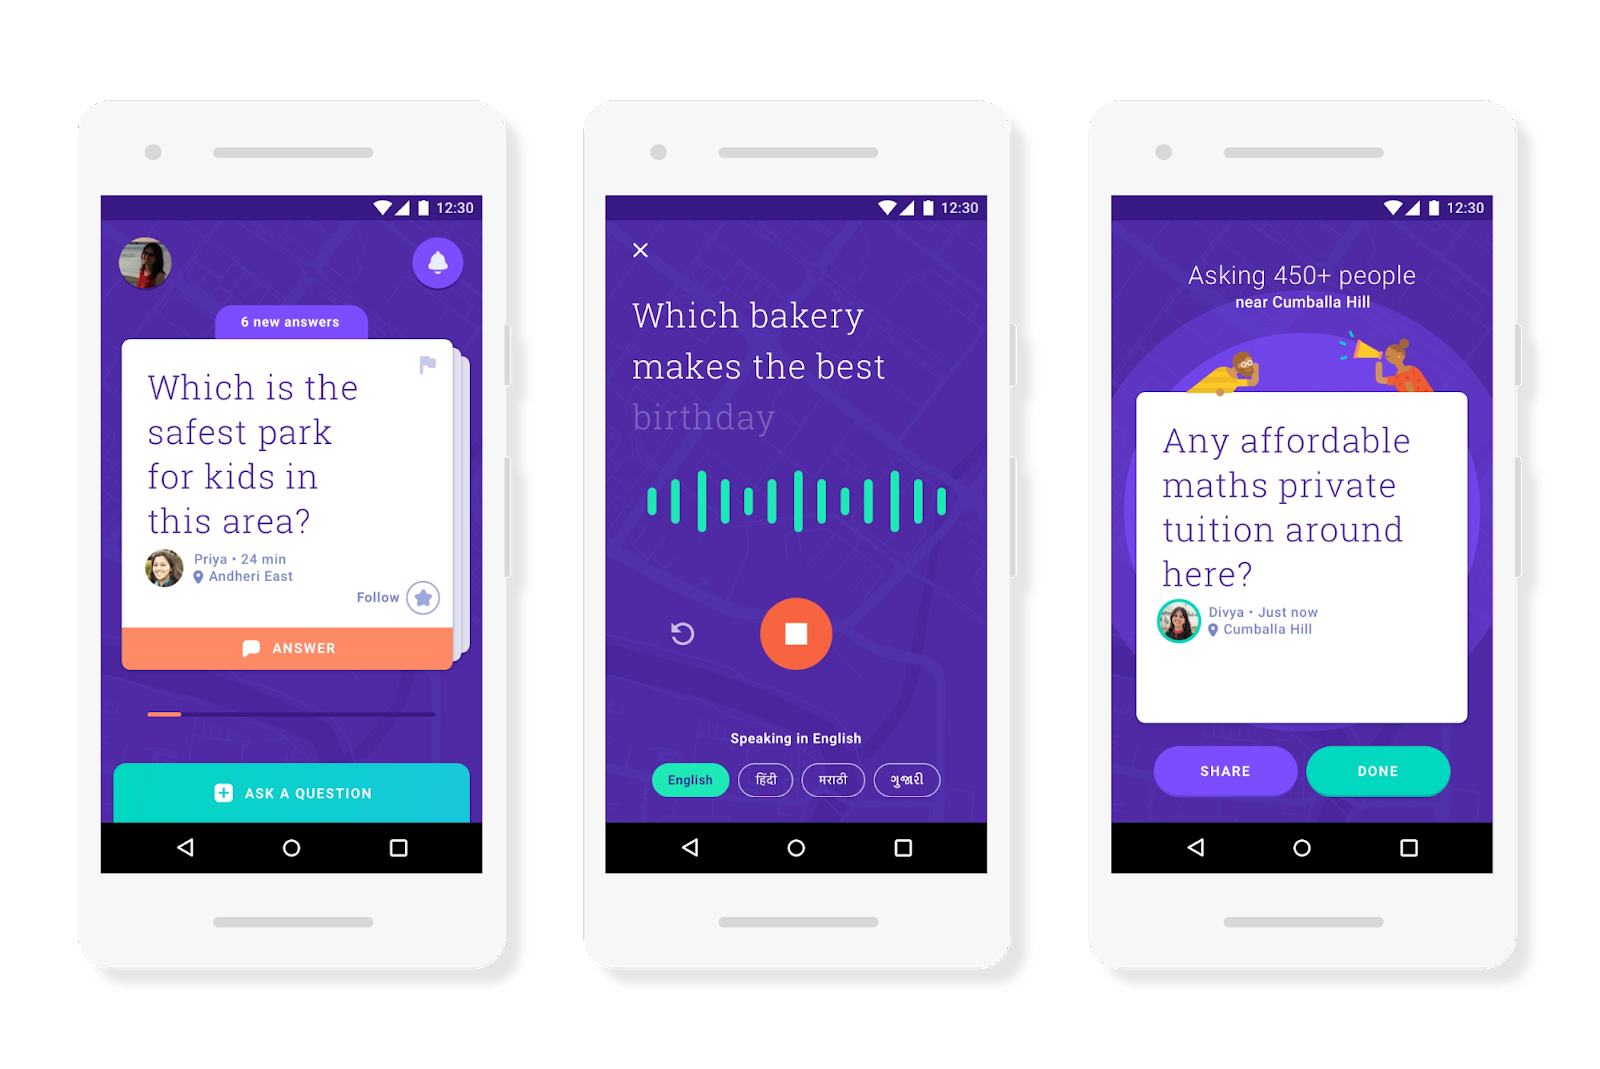 Google Neighbourly aims to bring trusted answers to Indian neighborhoods